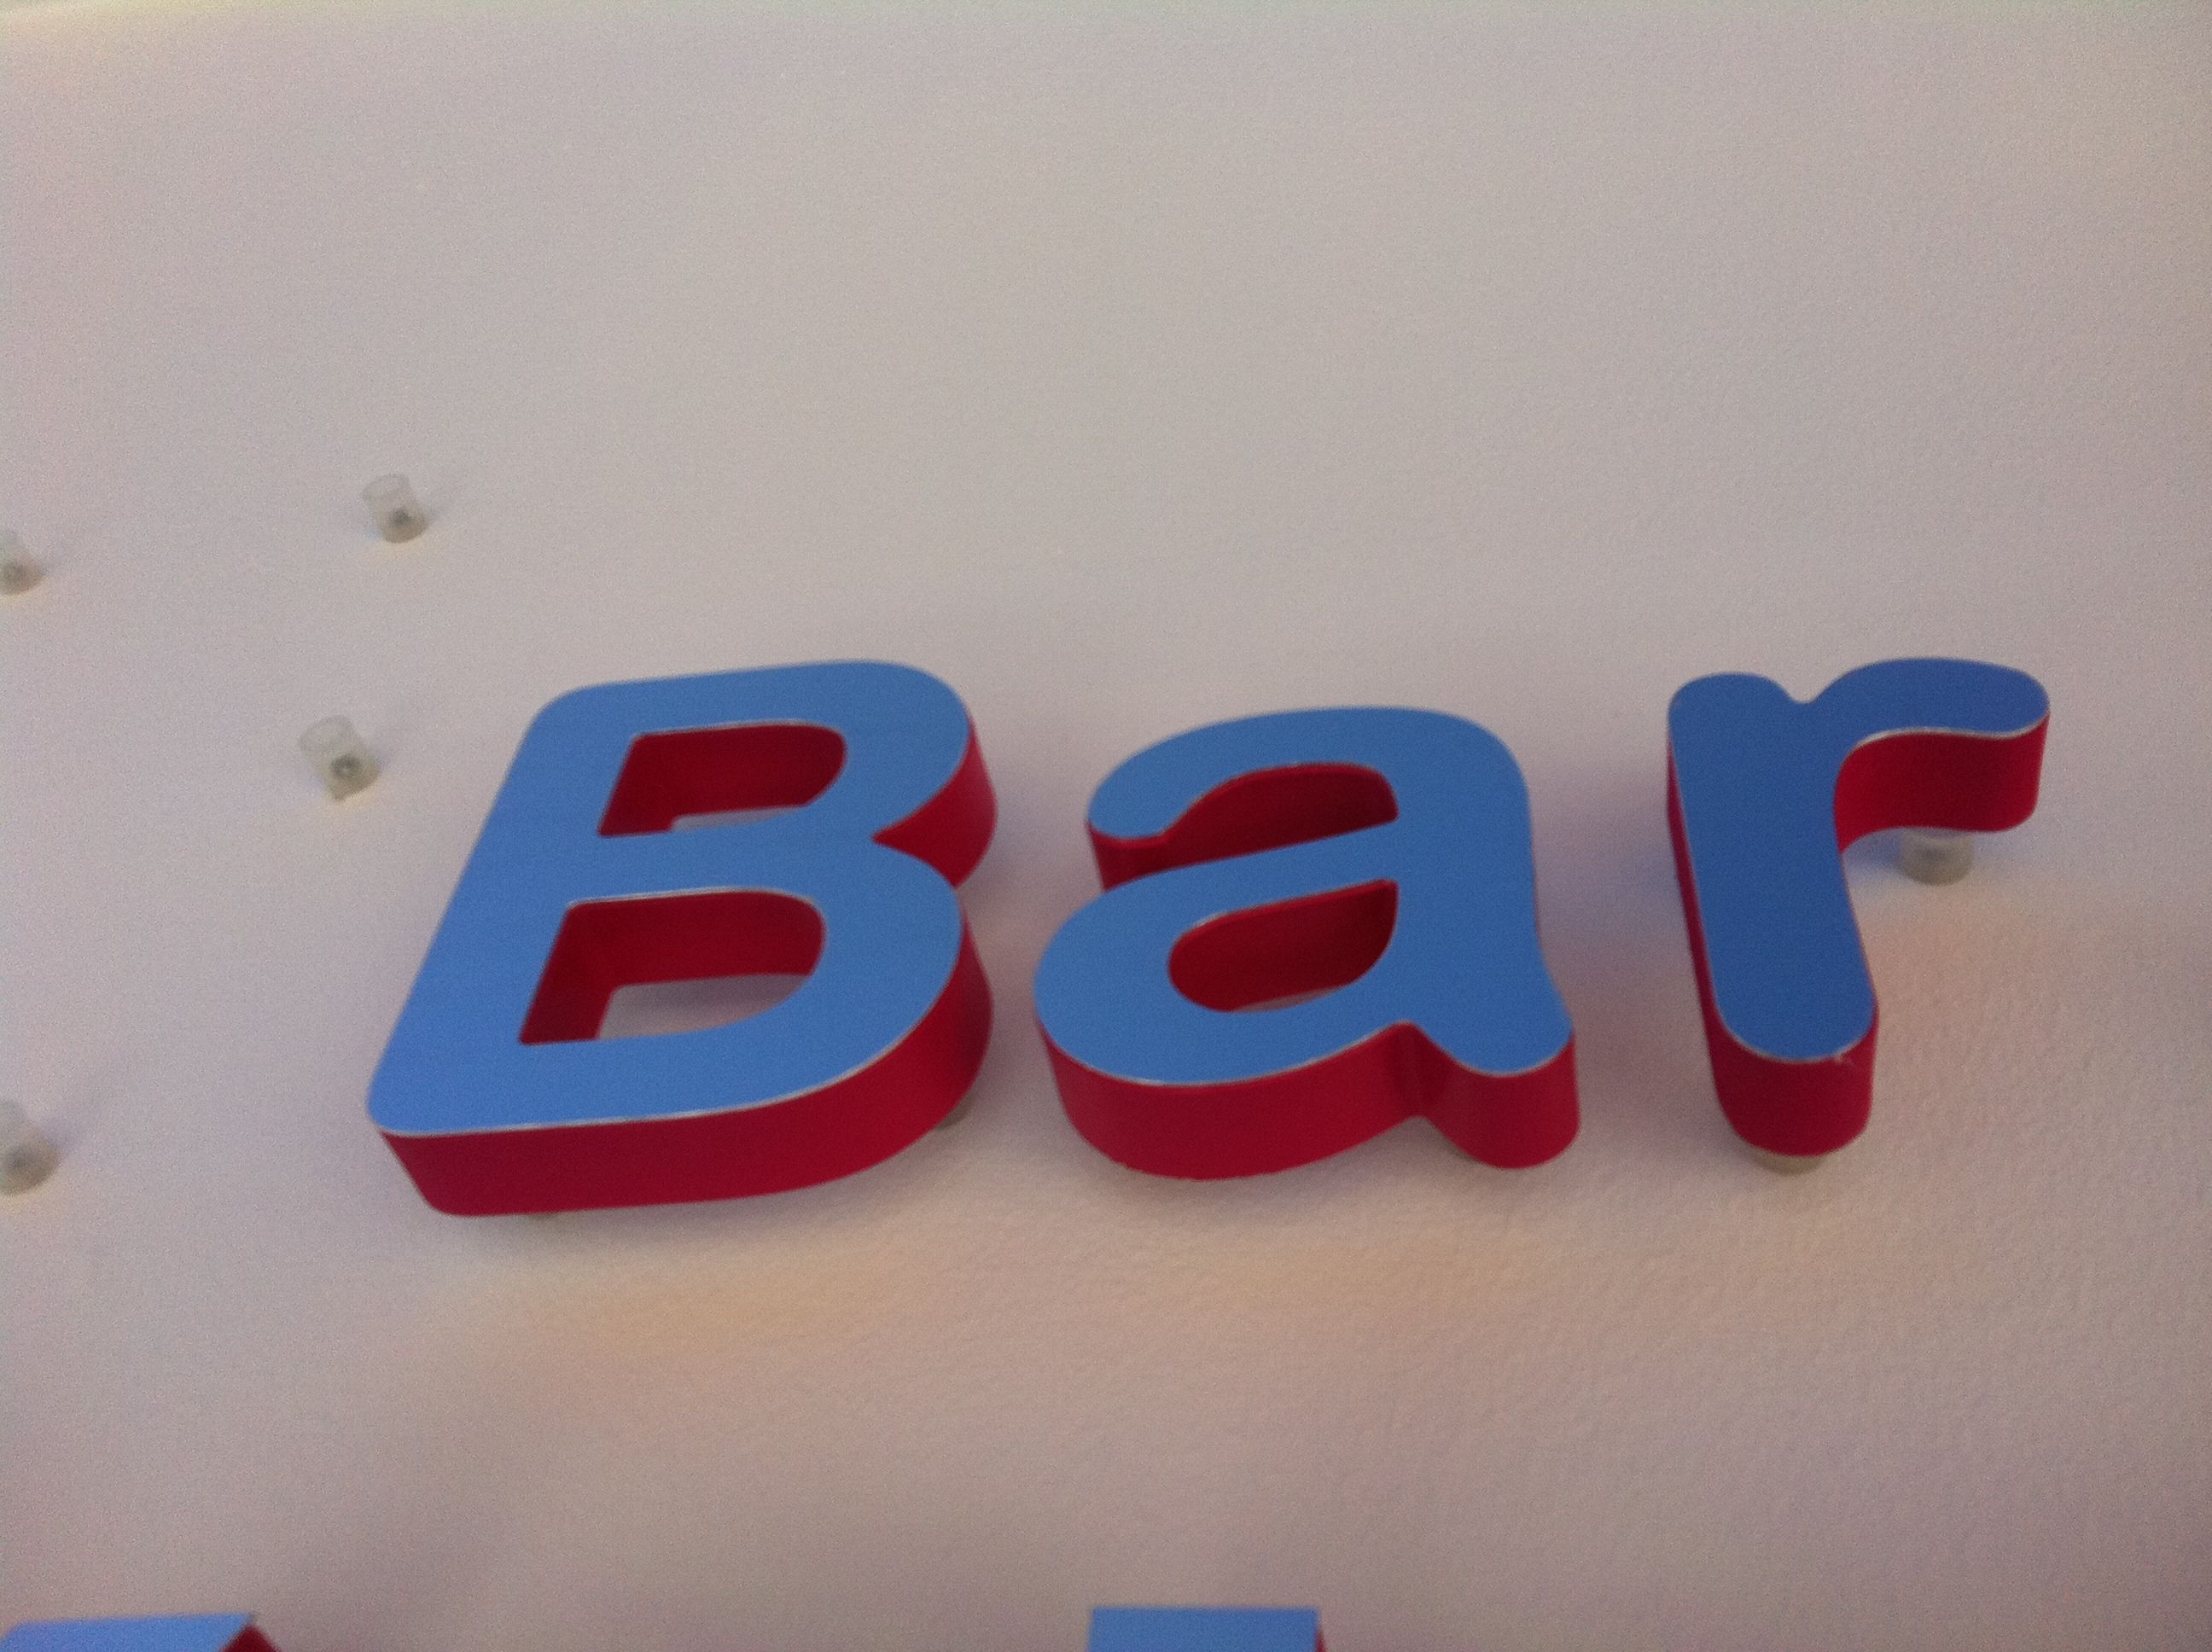 Stainless steel and PVC letters